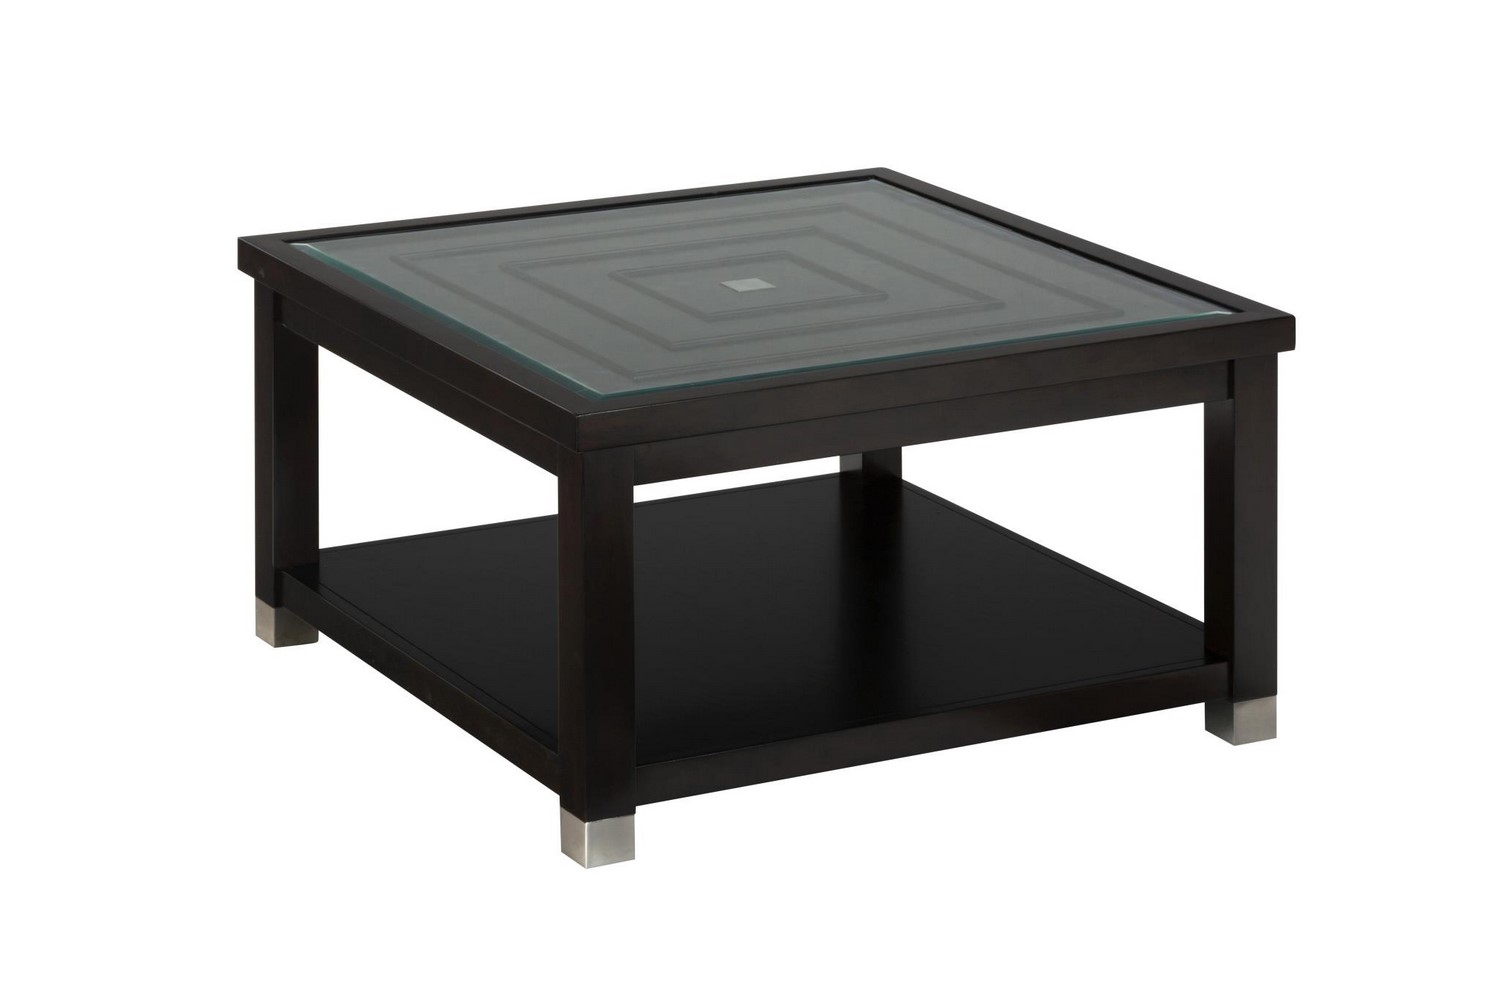 Jofran Warren 36 Inch Square Cocktail Table EFurnitur Mart